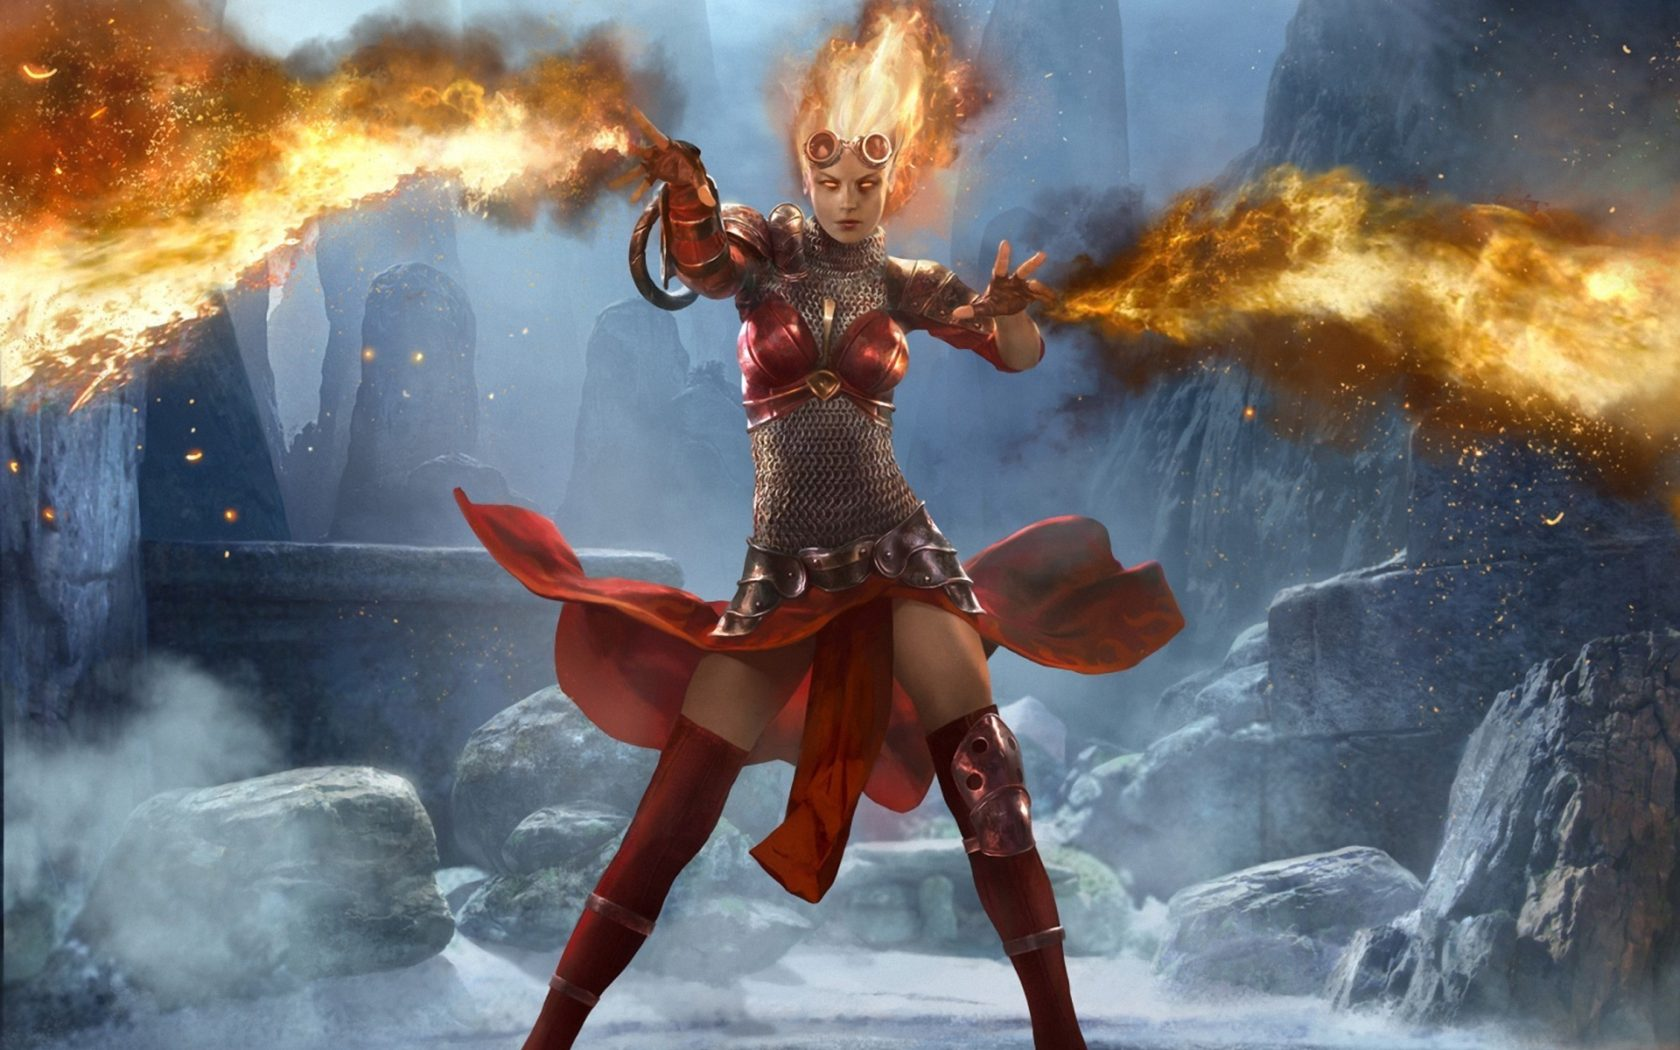 Magic Wallpaper Iphone X Magic The Gathering Fire Armor Games Girl Wallpapers13 Com